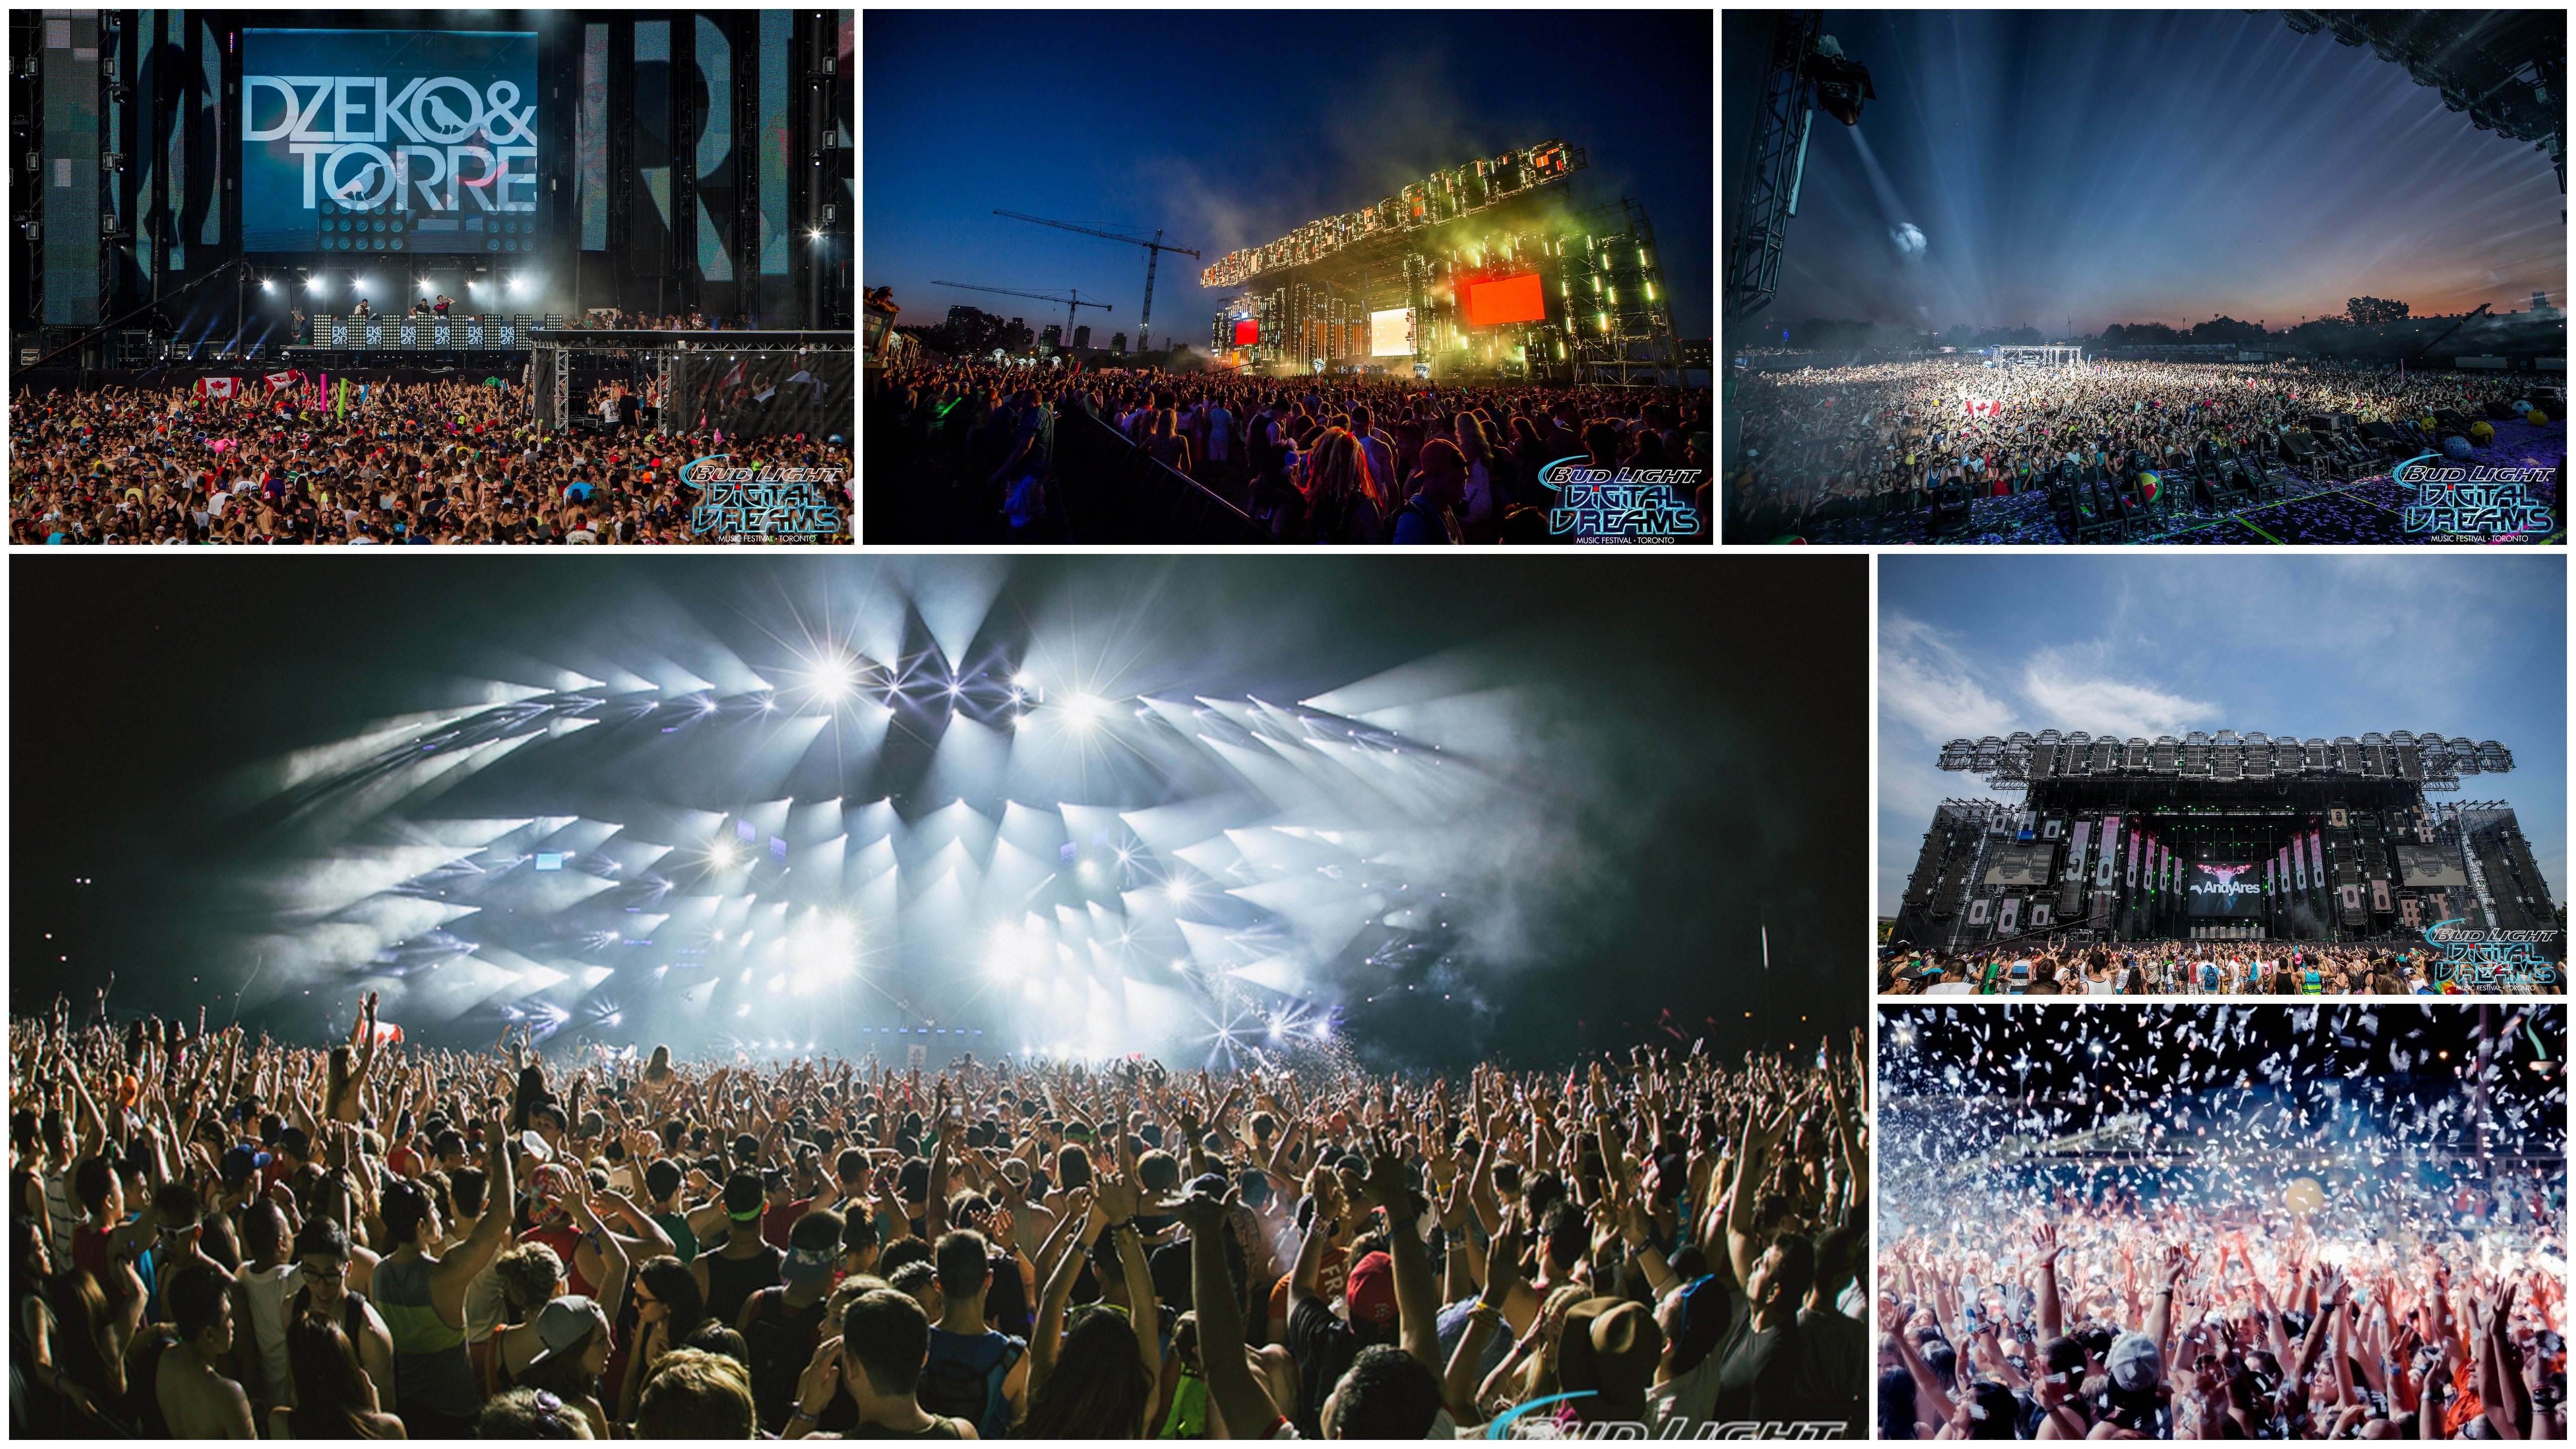 EDM and Digital Dreams Toronto proves to be King